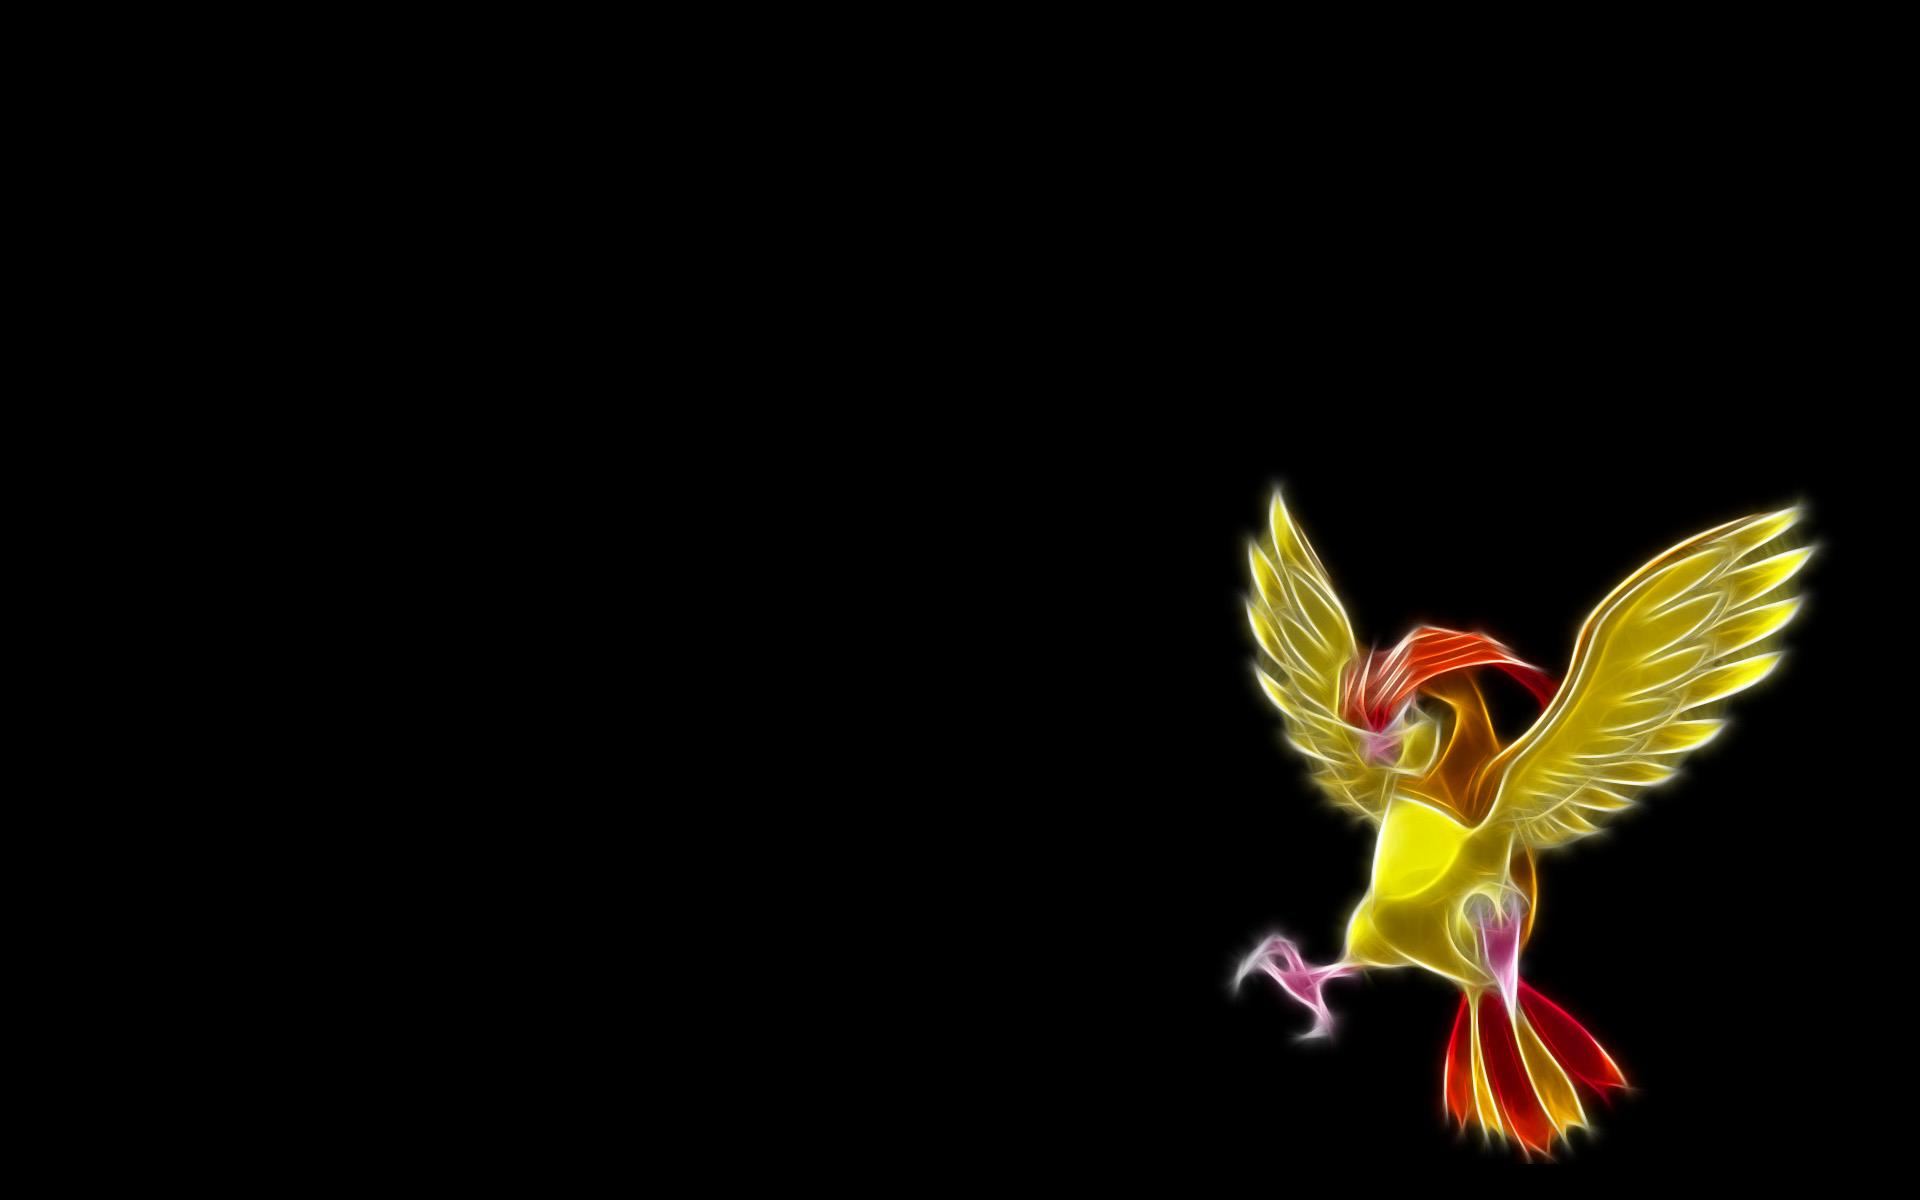 pidgeotto-pokemon-wallpaper-free-download